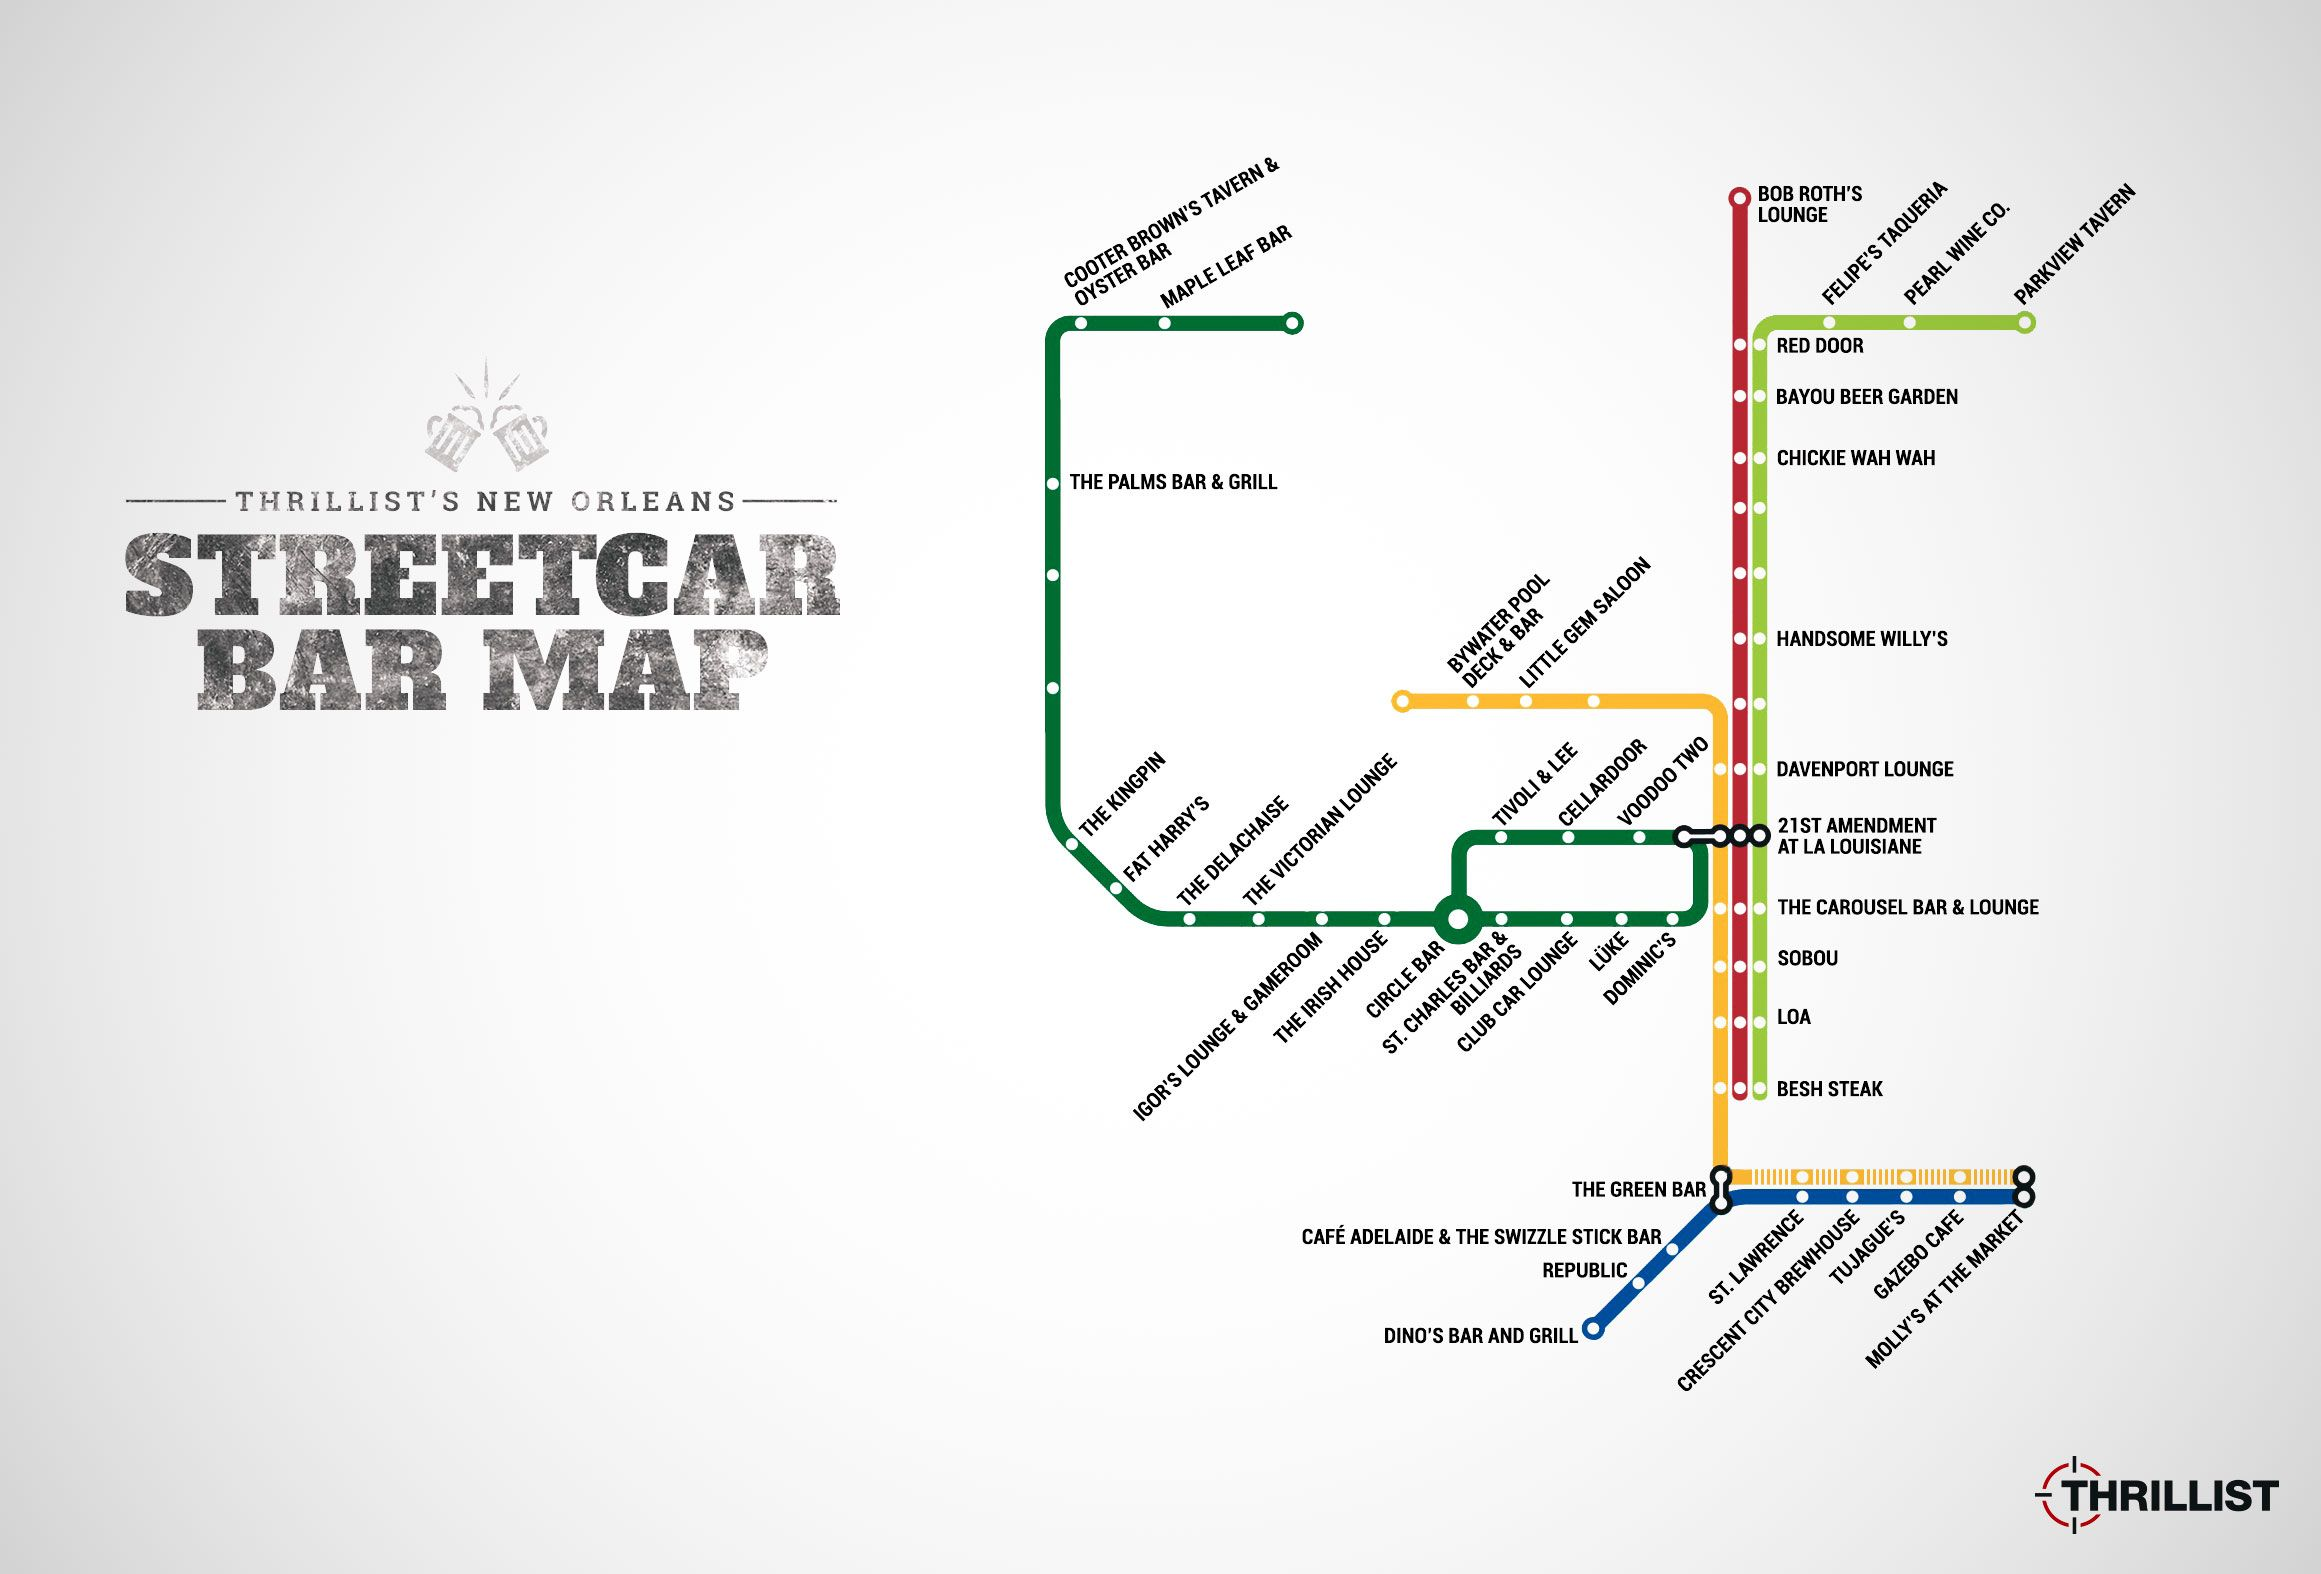 Streetcar In New Orleans Map.Bar Hopping On The Streetcar Nola Pinterest New Orleans Travel